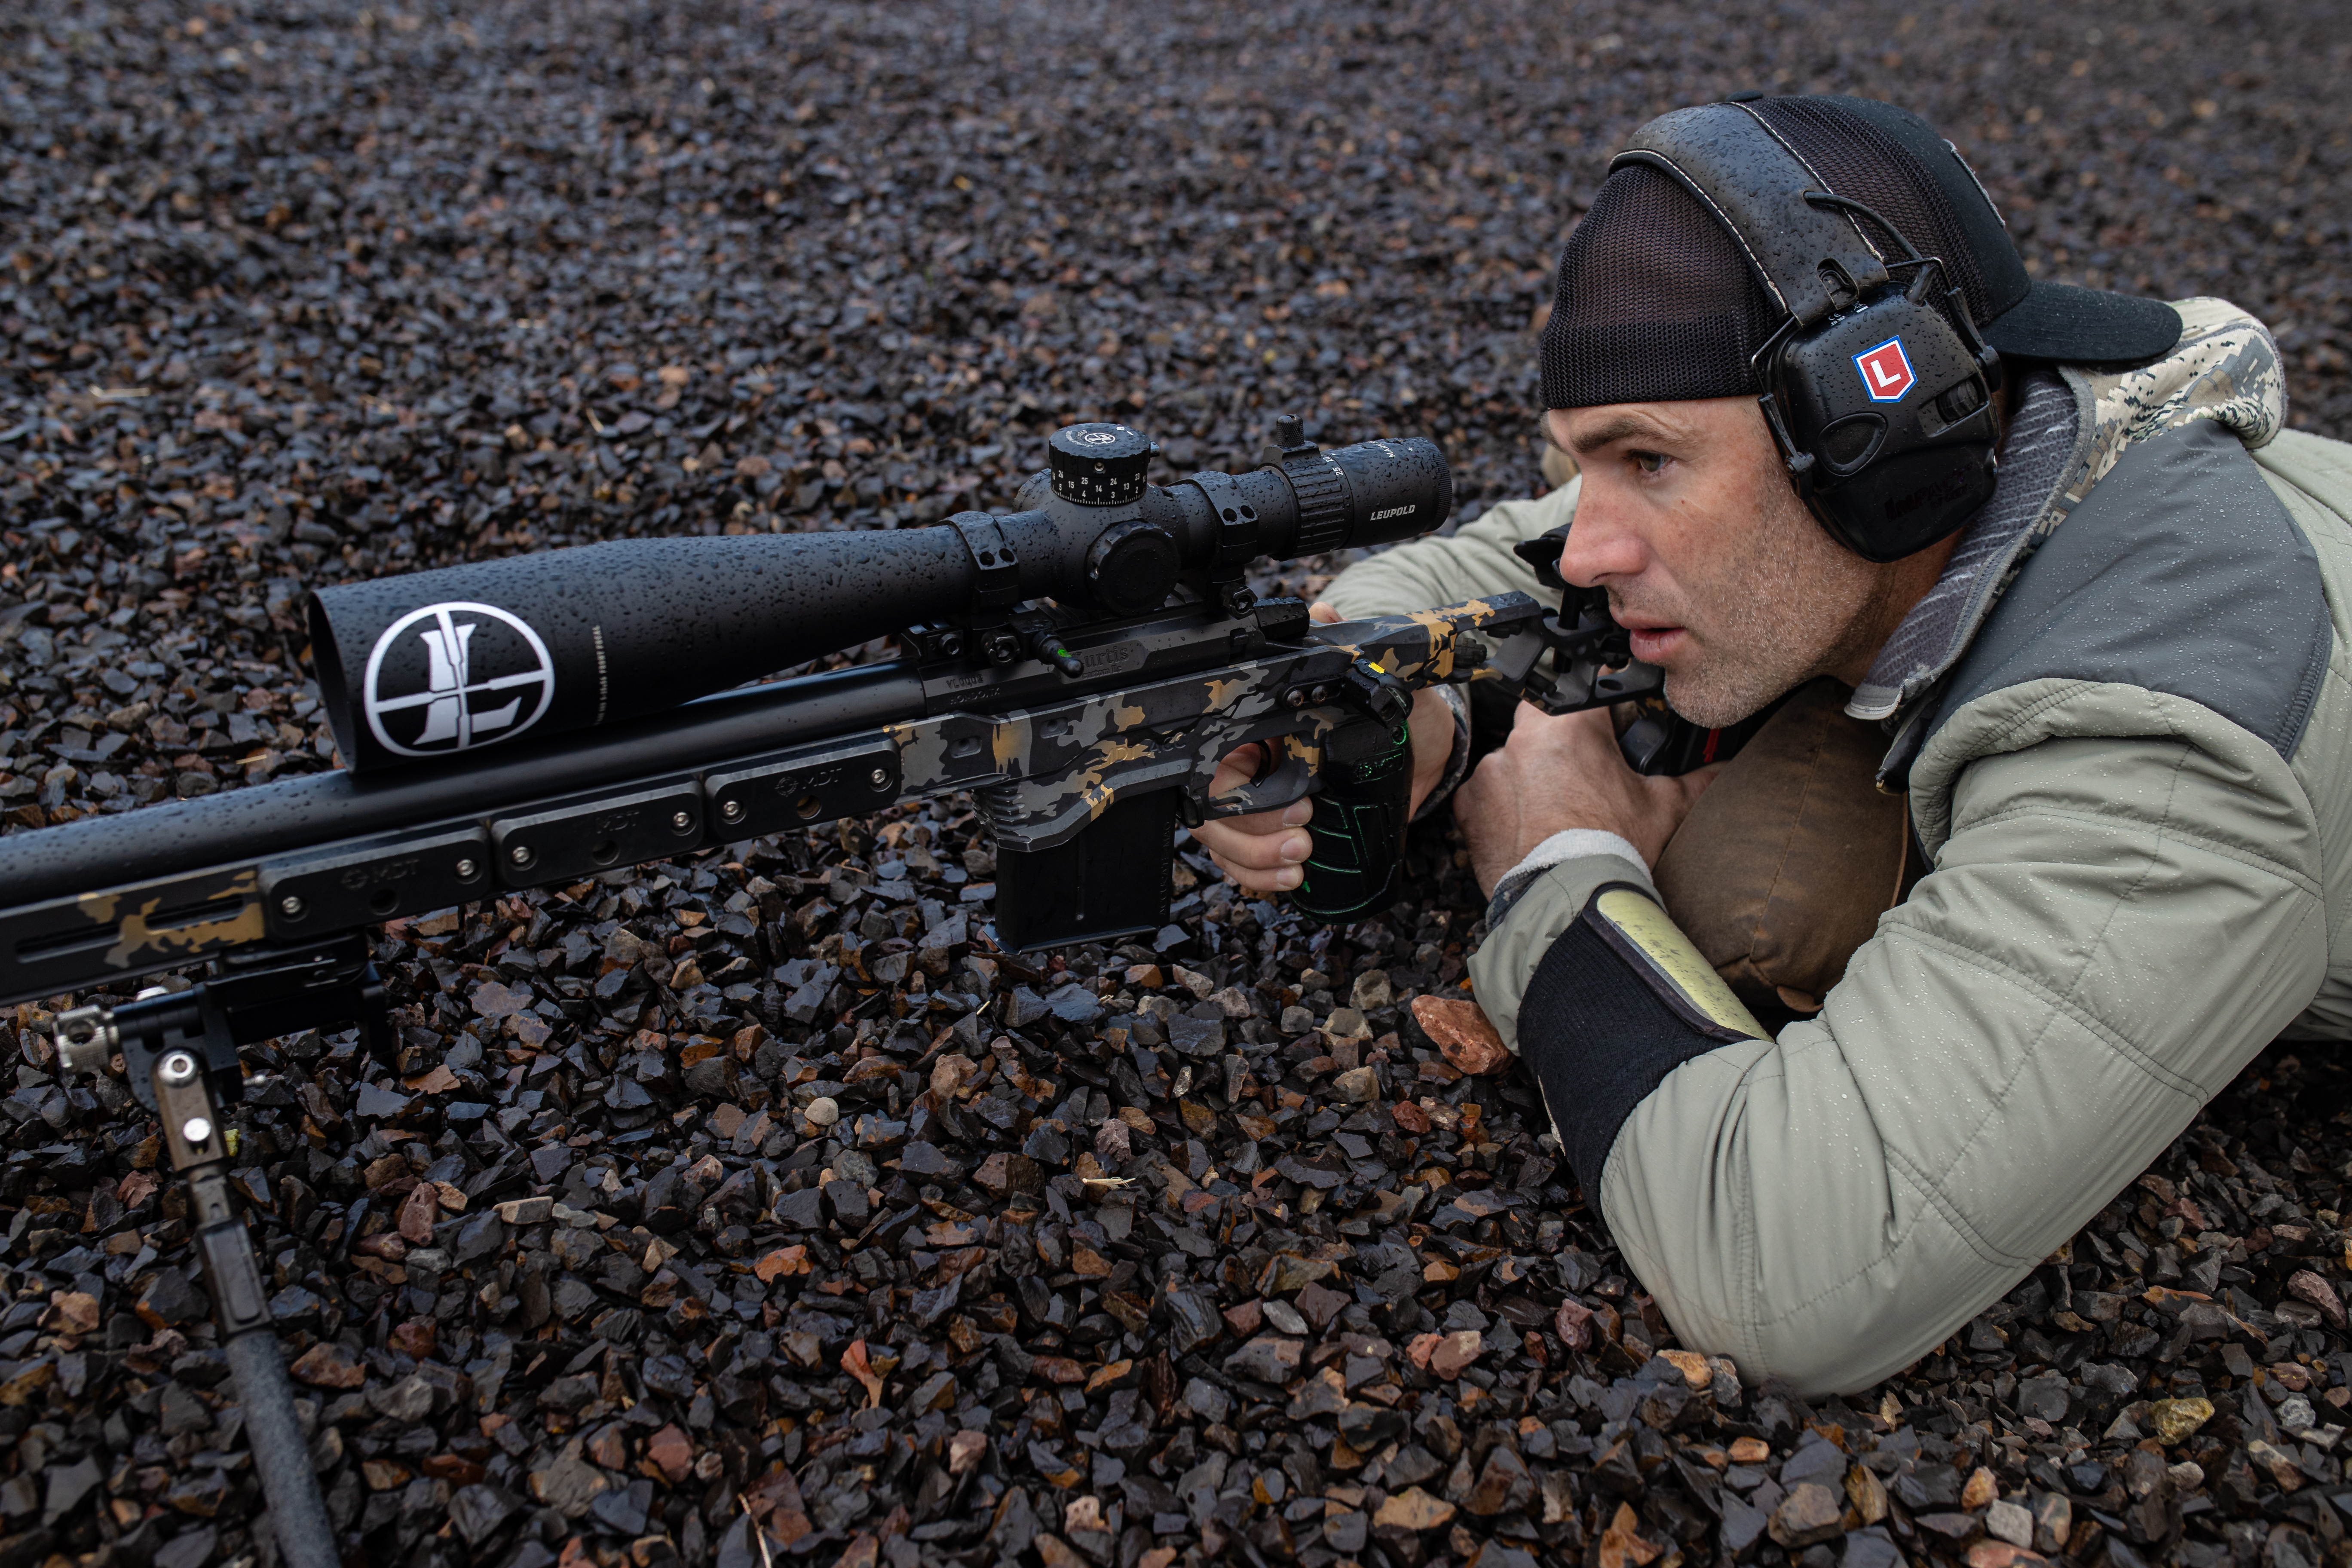 Leupold Adds Competition-Changing New PR2-MIL and PR2-MOA Reticles to Award-Winning Mark 5HD Riflescope Line